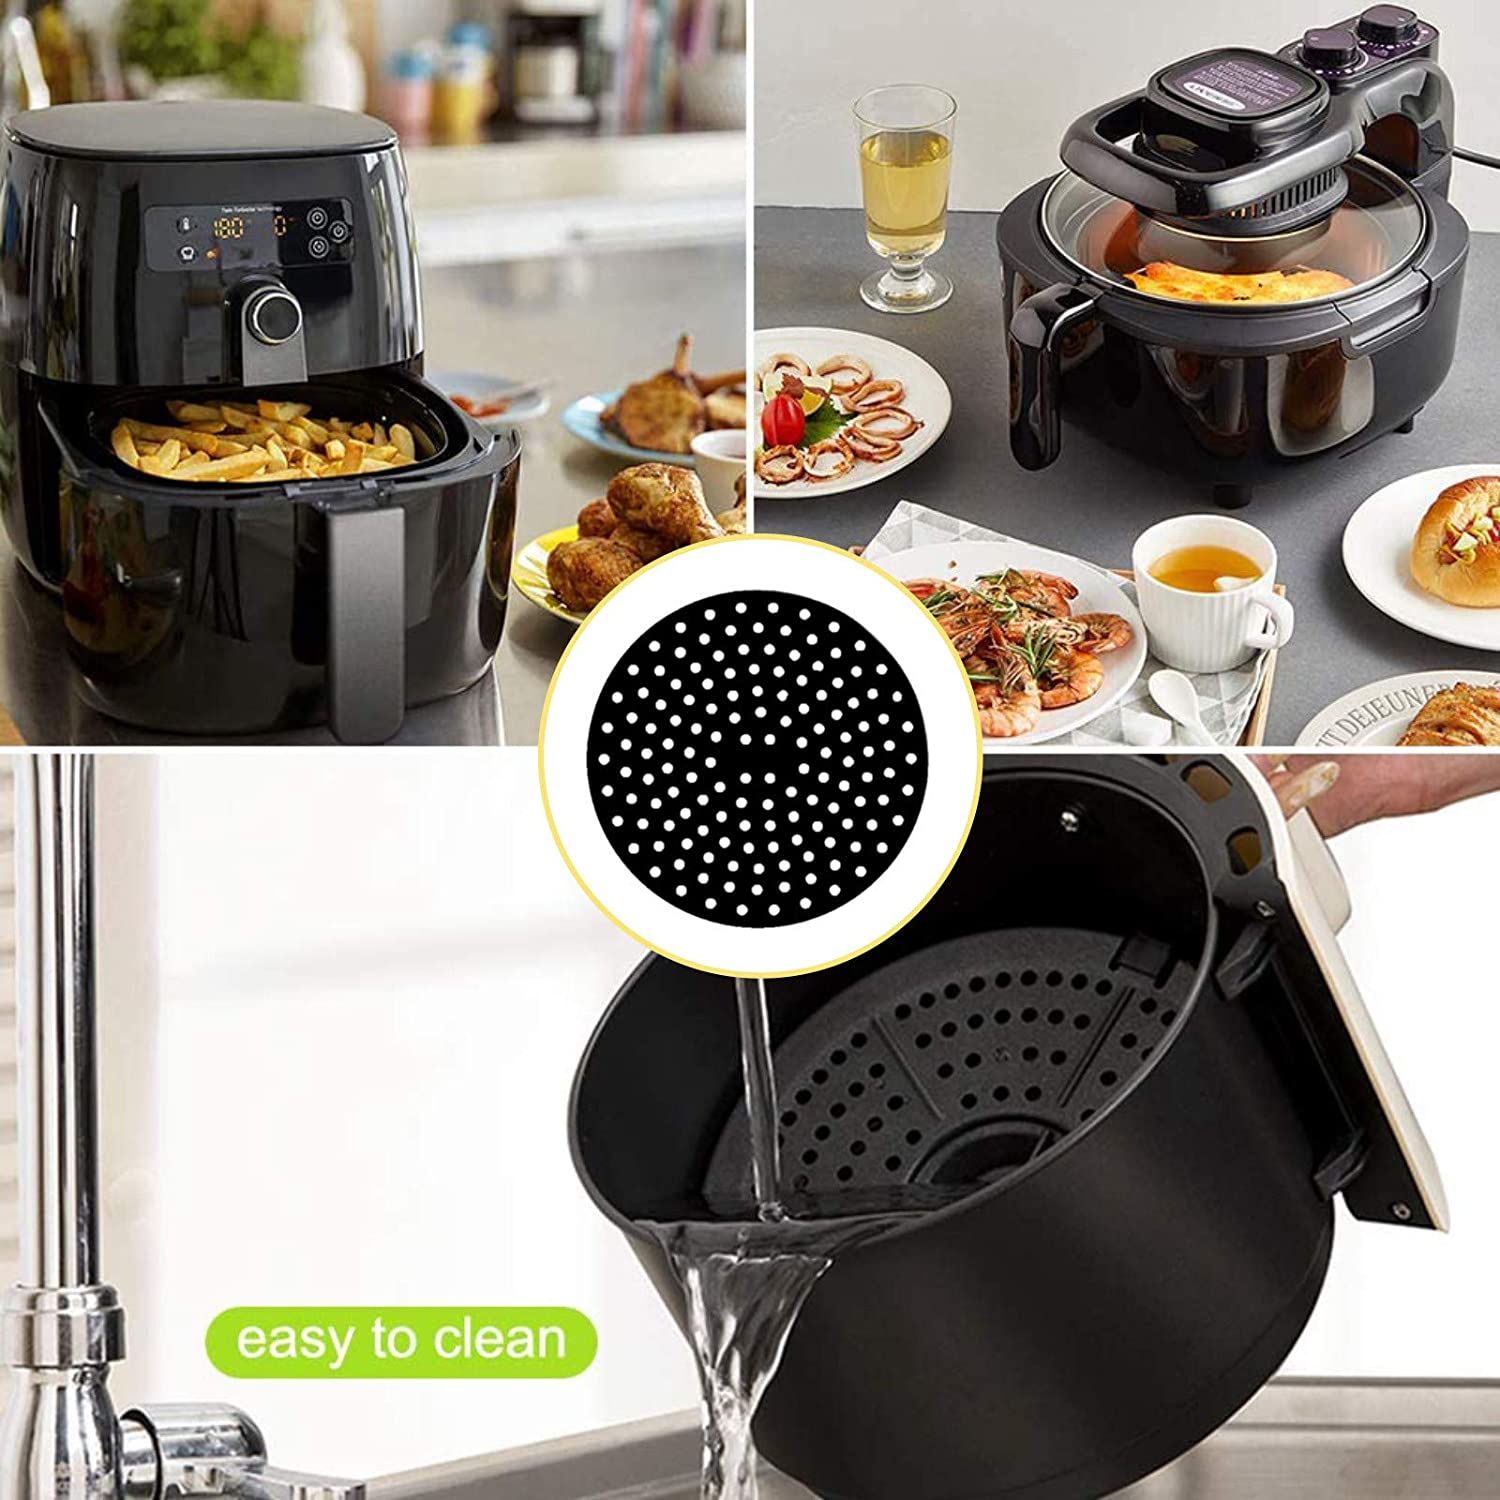 Reusable Air Fryer Liners – 8 Inch, Round shape, Non-Stick Silicone Air Fryer Basket Mats   Air Fryer Accessories Can be used with air fryer   BPA Free(2PCS)